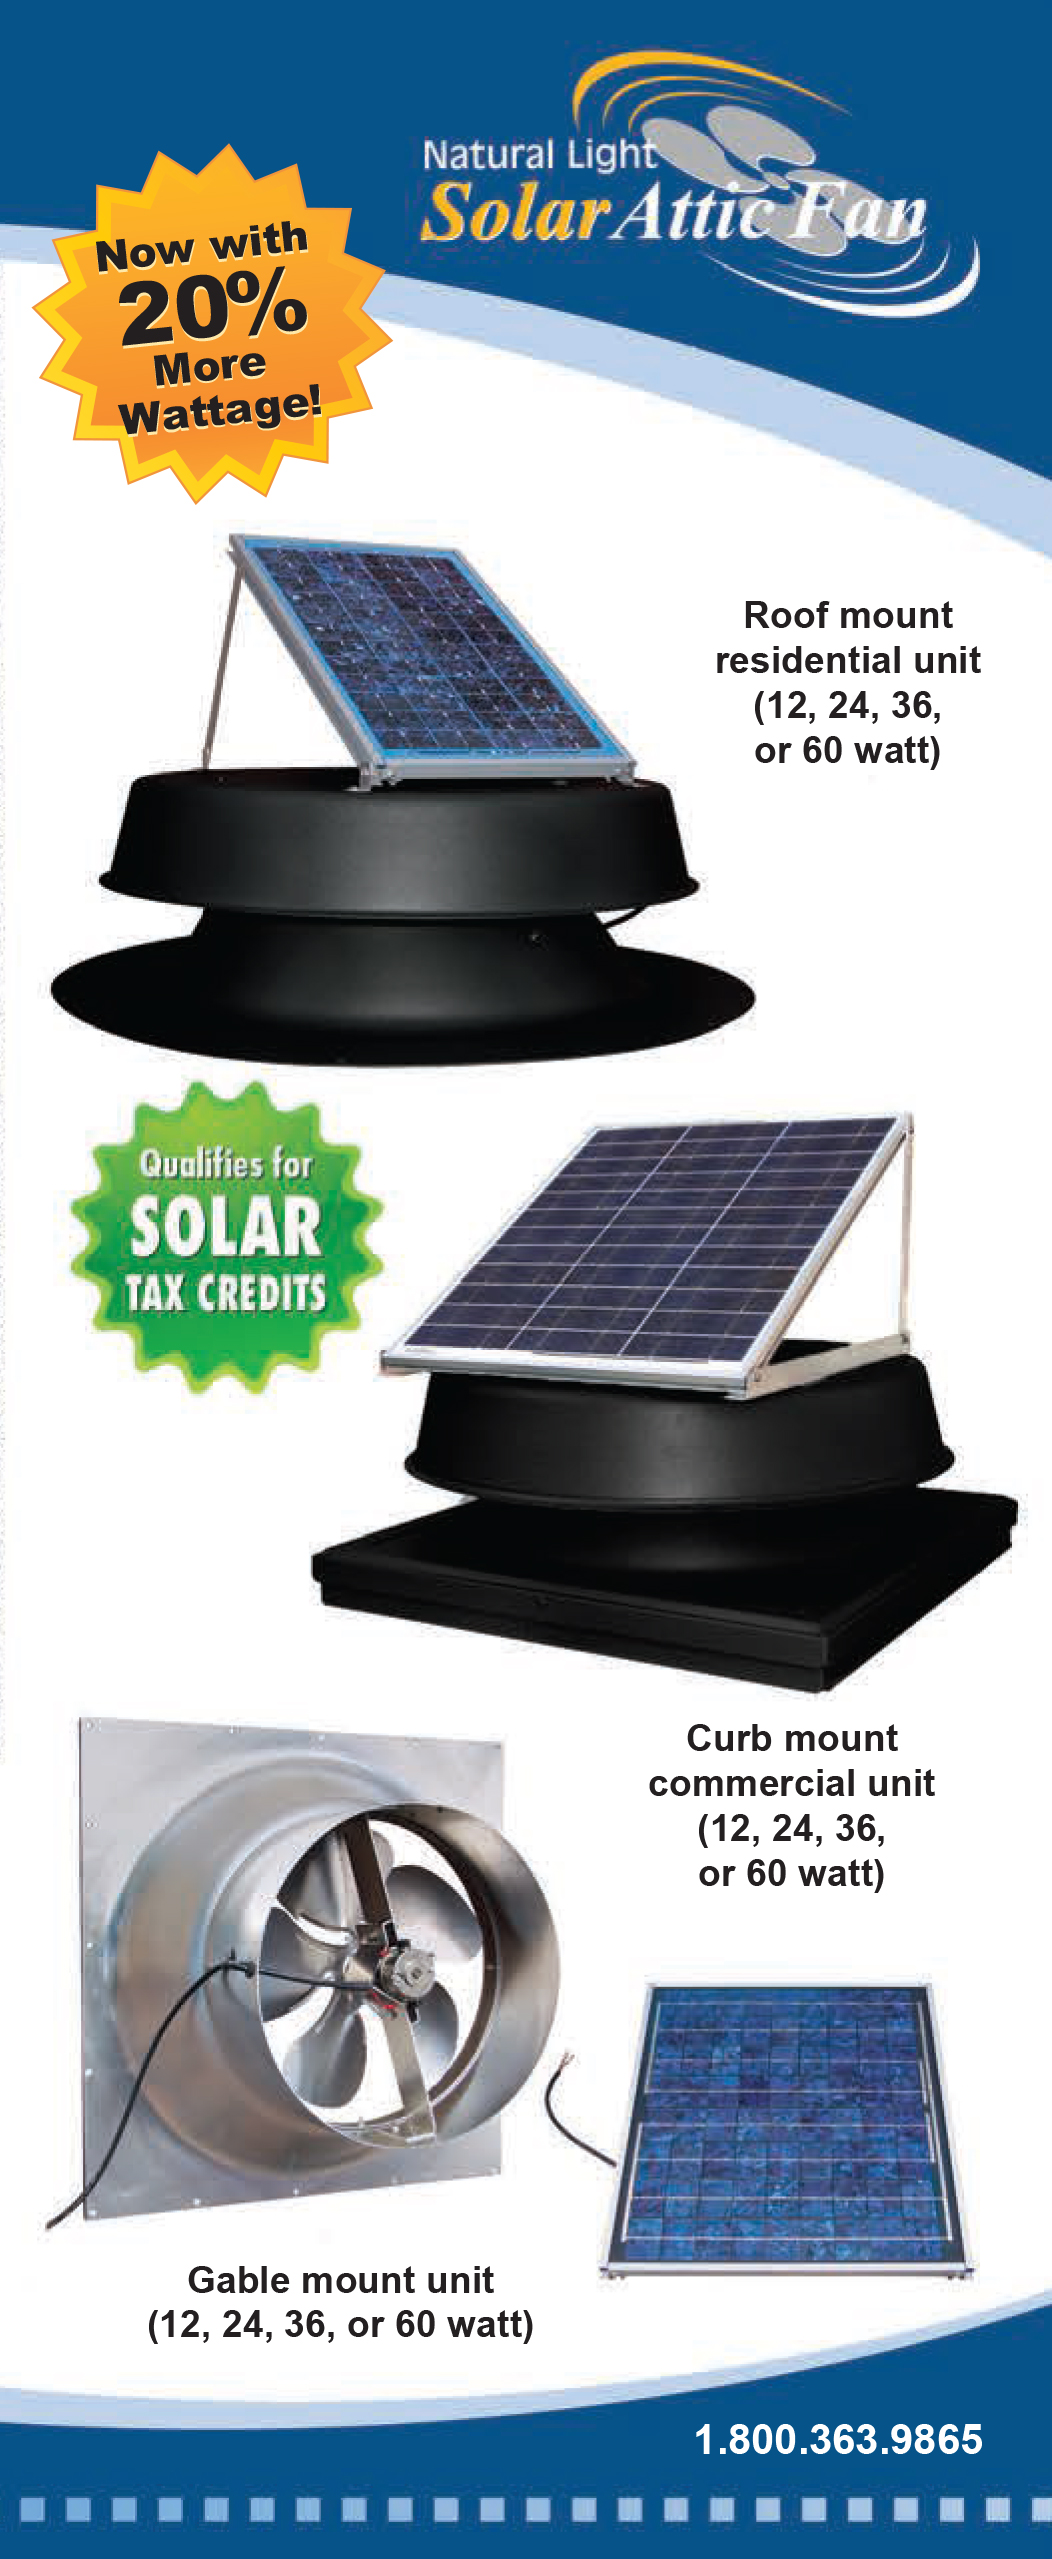 Brochures Installs Natural Light Solar Attic Fans Fan Switch All Installations Https Wp Content Uploads Brochure